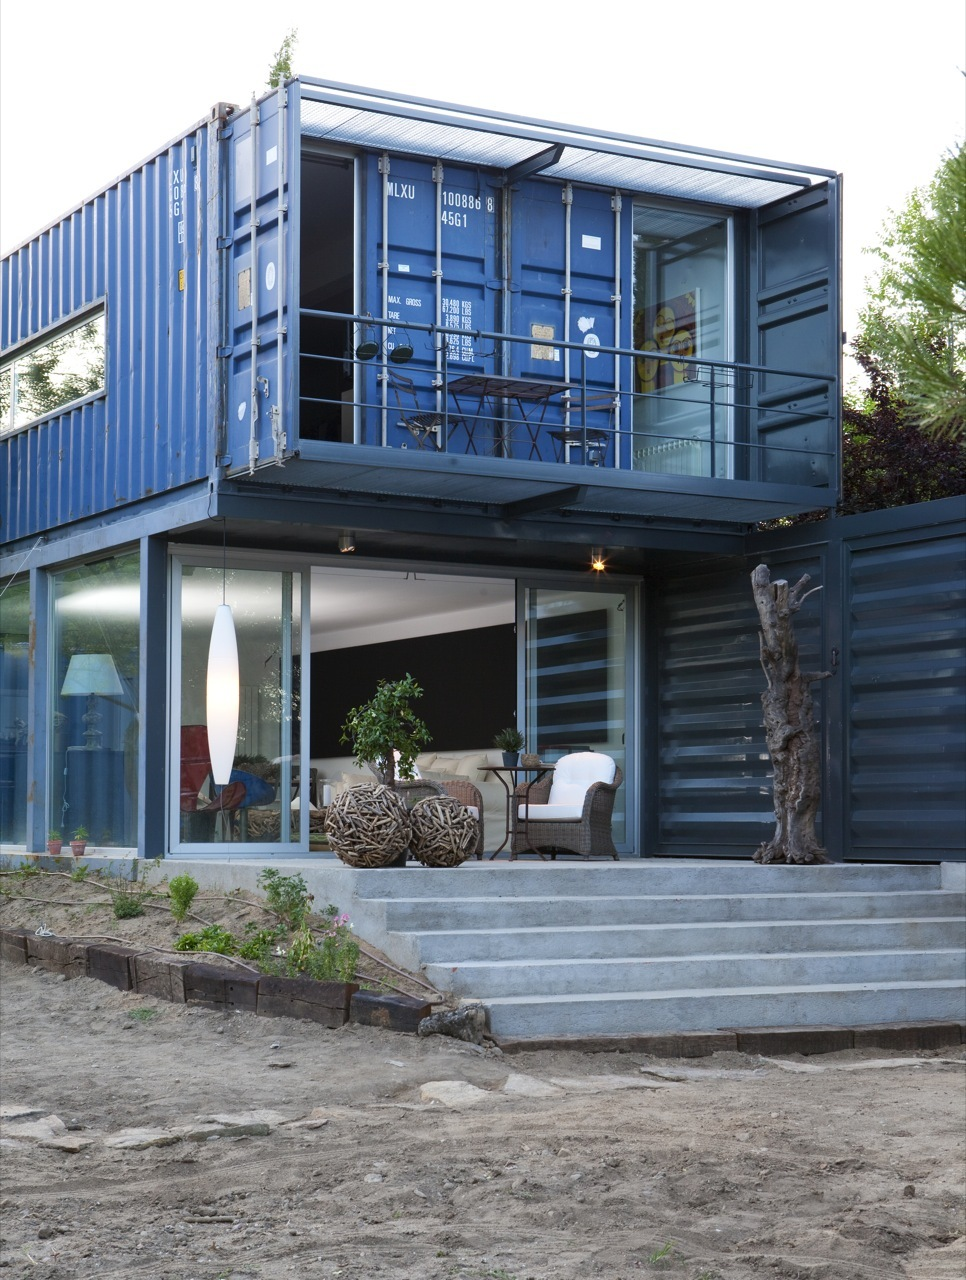 Shipping container homes two story container house in el tiemblo spain - Cargo container home builders ...